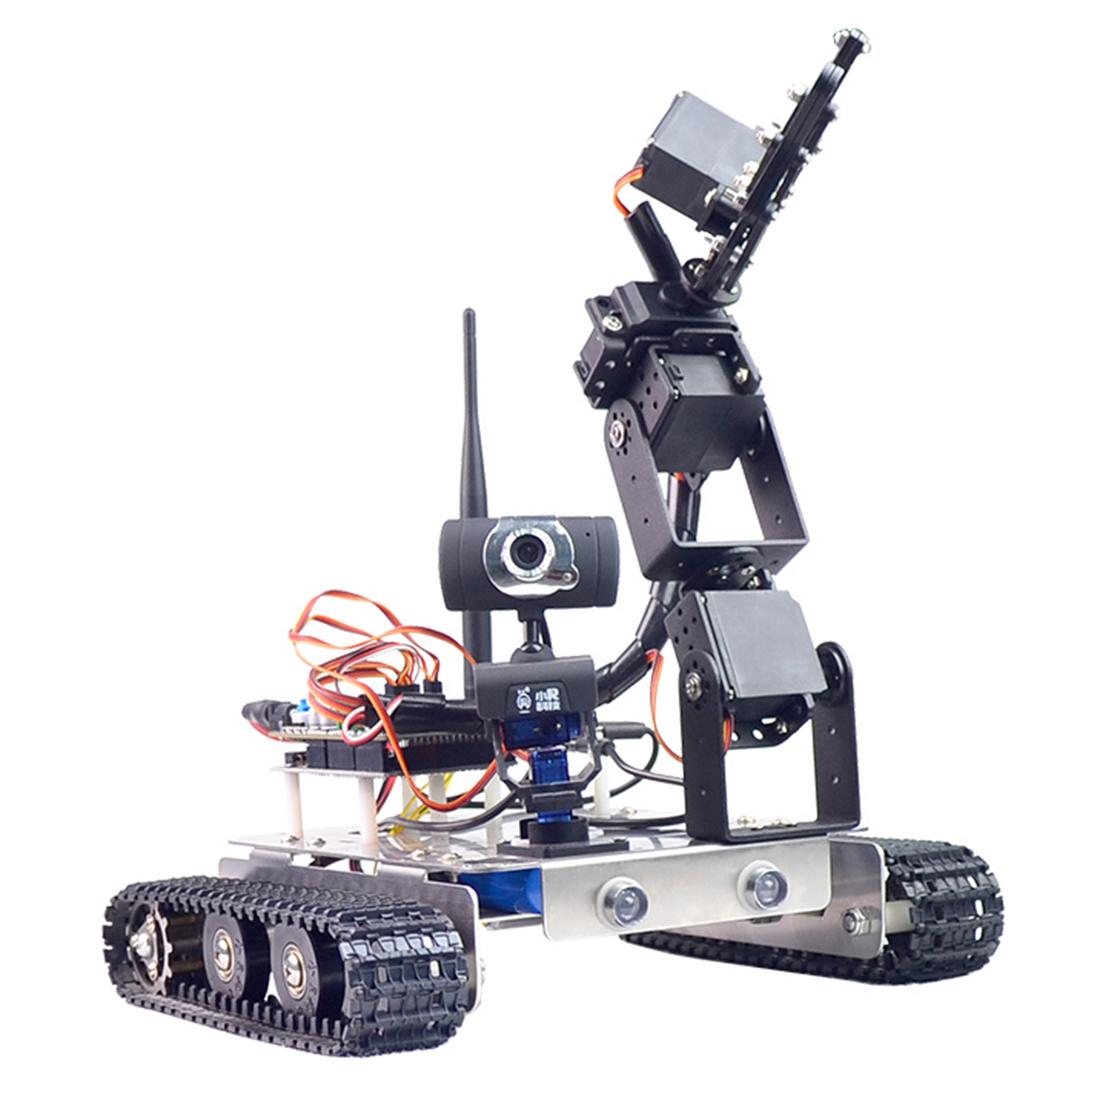 Programmable Robot DIY Wifi + Bluetooth Stainless Steel Chassis Track Tank Steam Educational Car with Arm for Raspberry Pi 3B+ 2